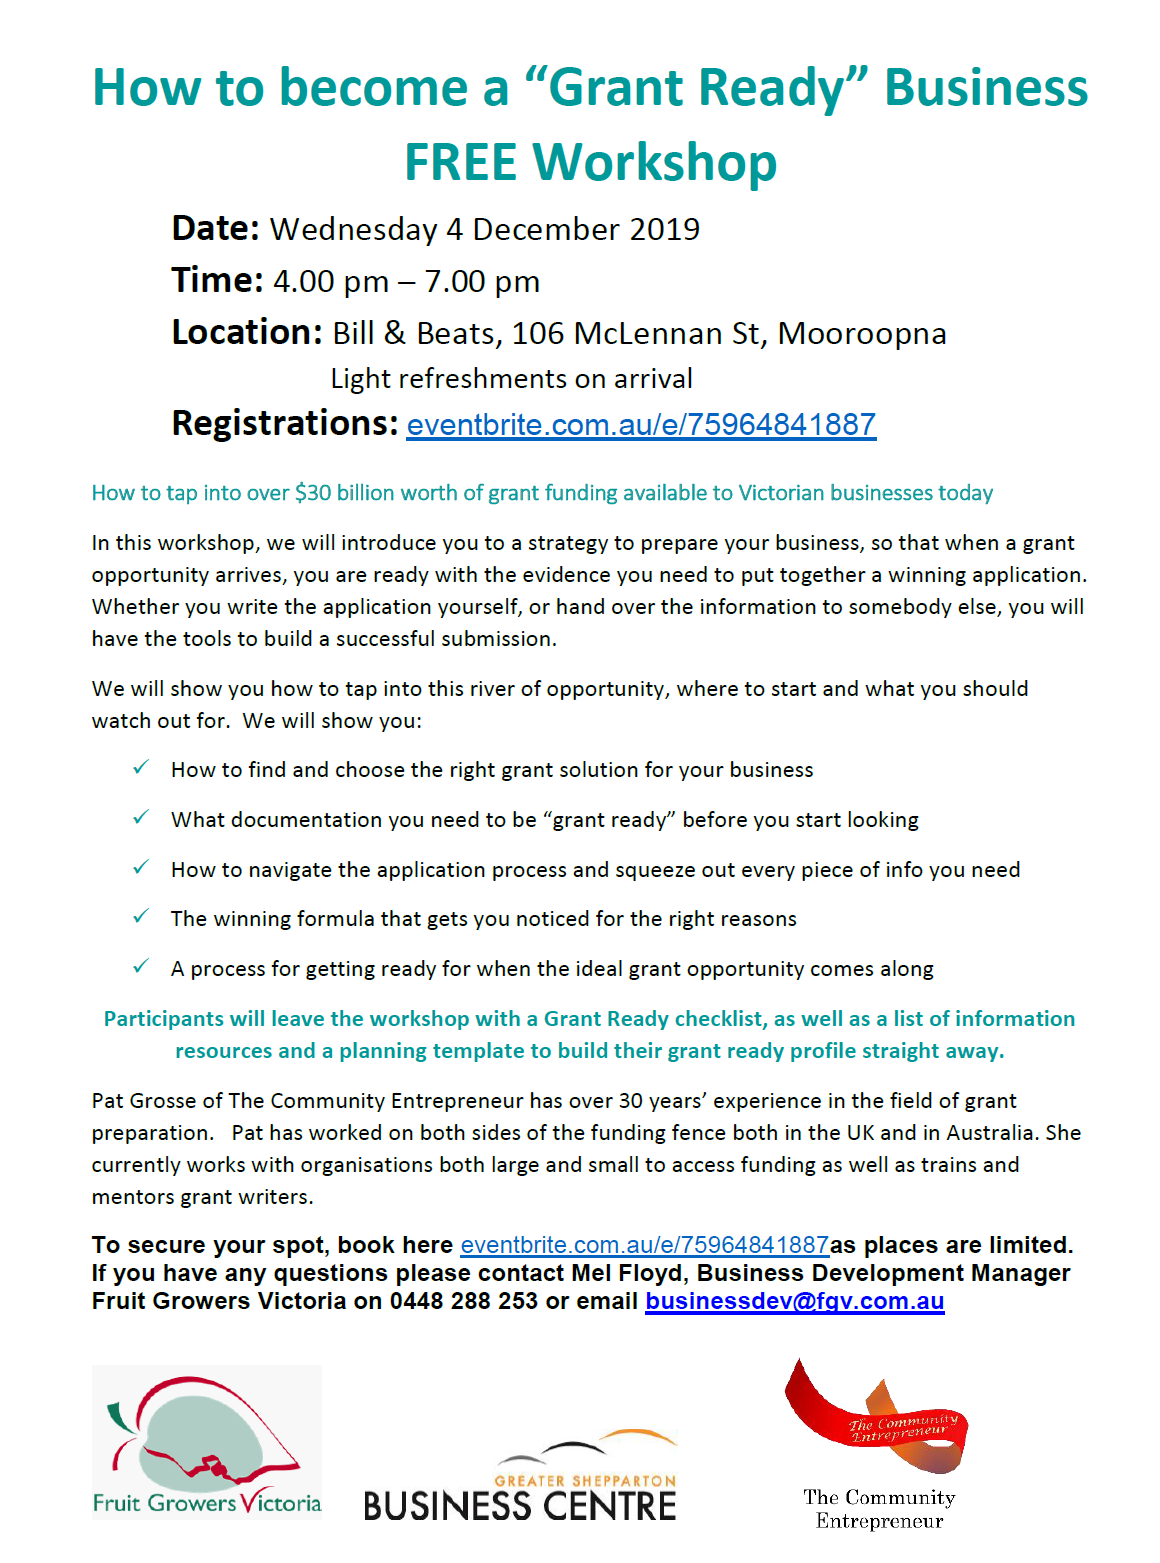 How to become a 'Grant Ready Business'- FREE Workshop- Wednesday 4th December 2019 from 4:00pm-7:00pm